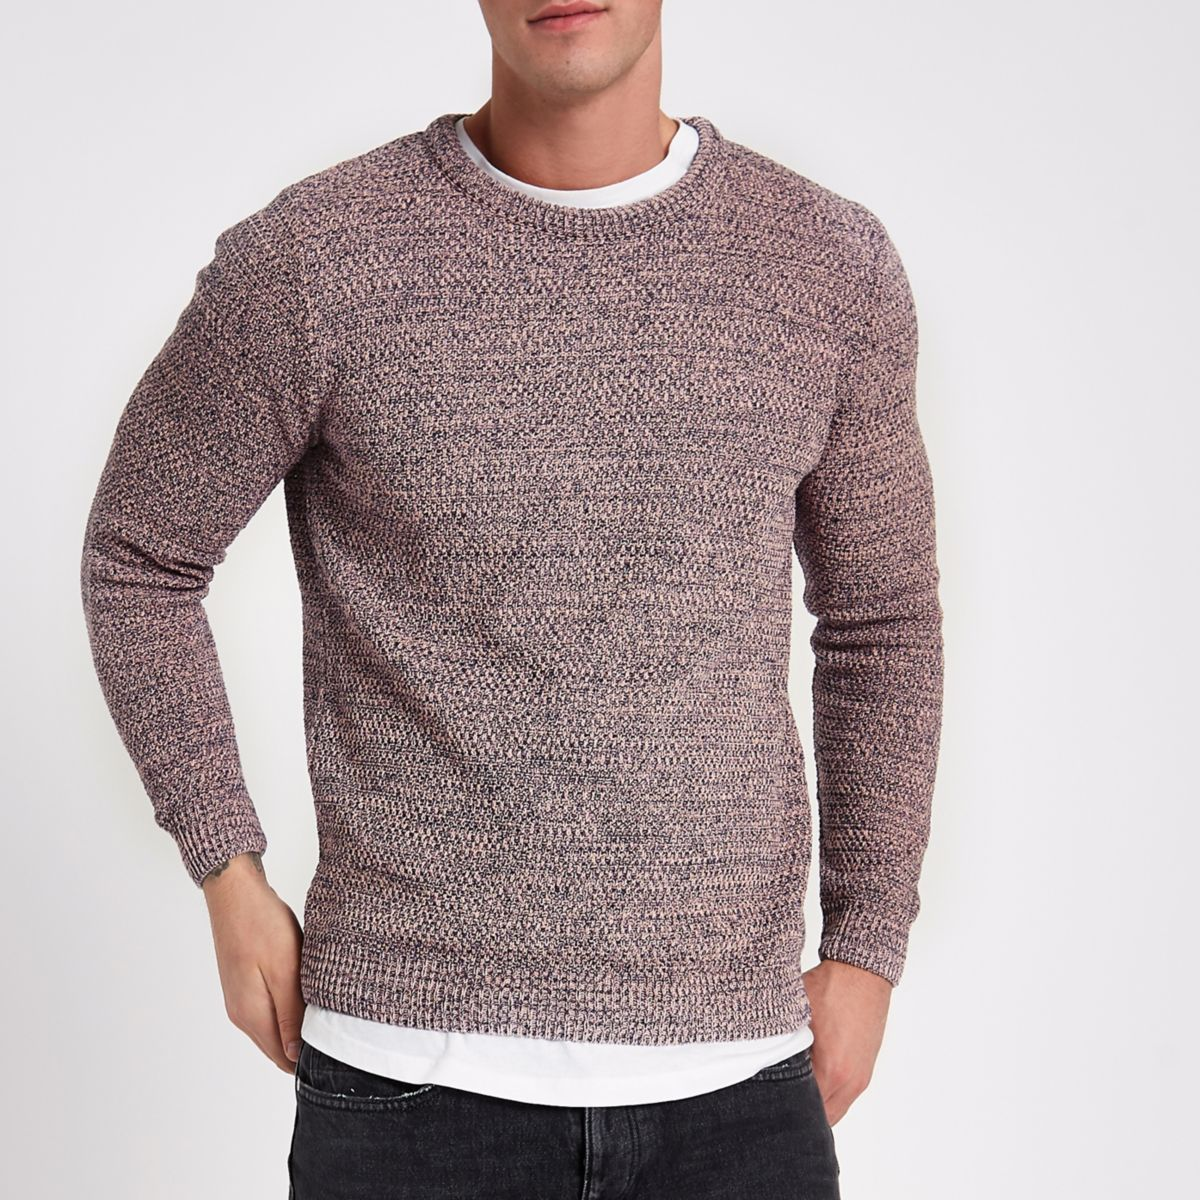 Pink textured knit slim fit crew neck sweater